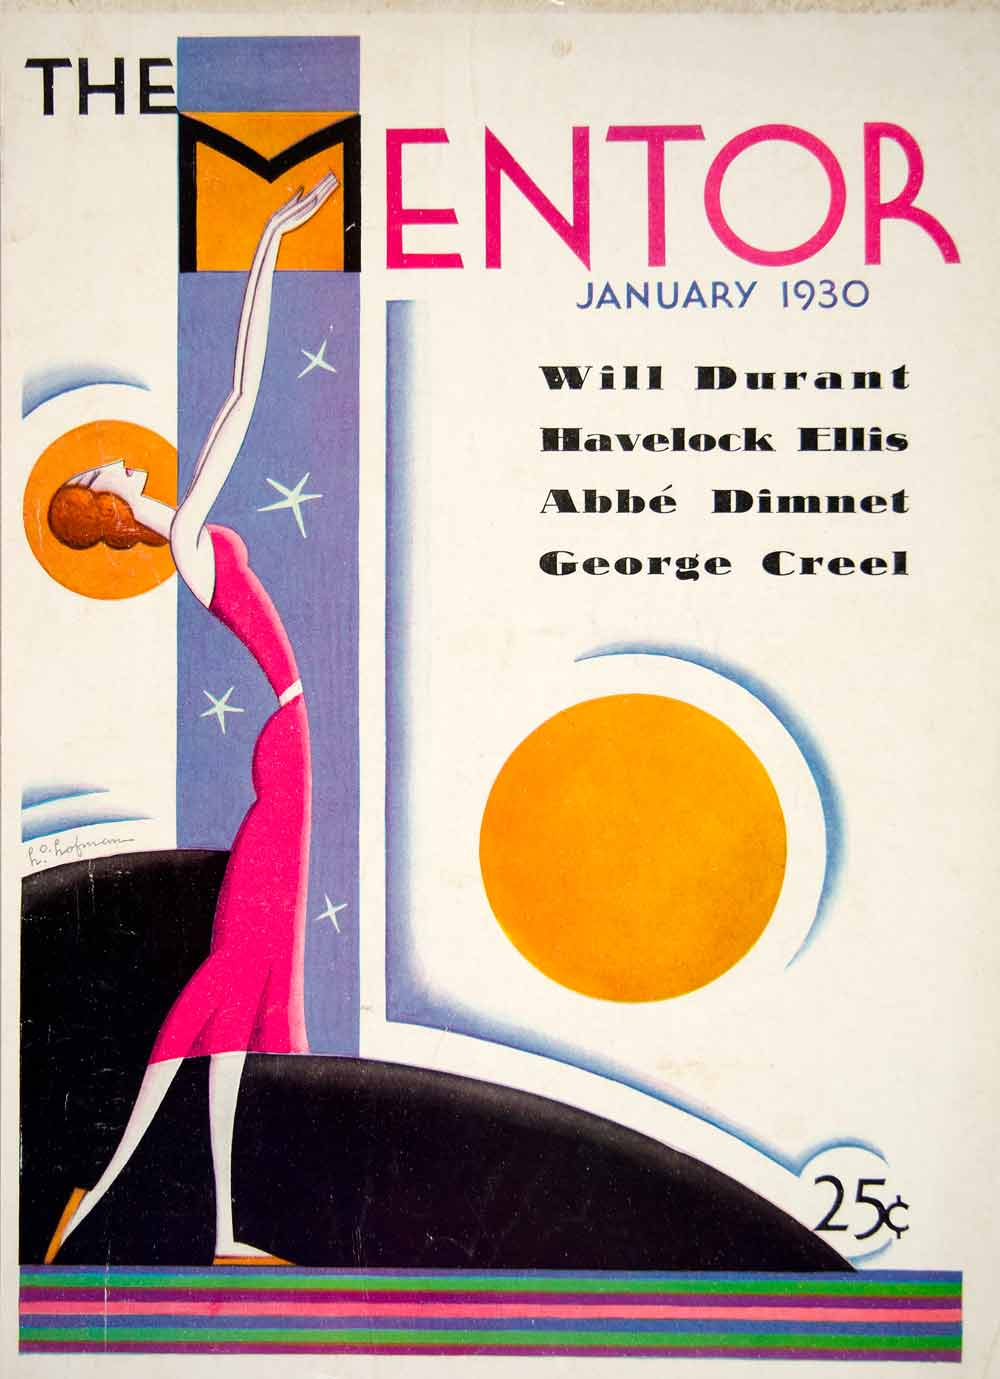 1930 cover the mentor january art deco woman red dress